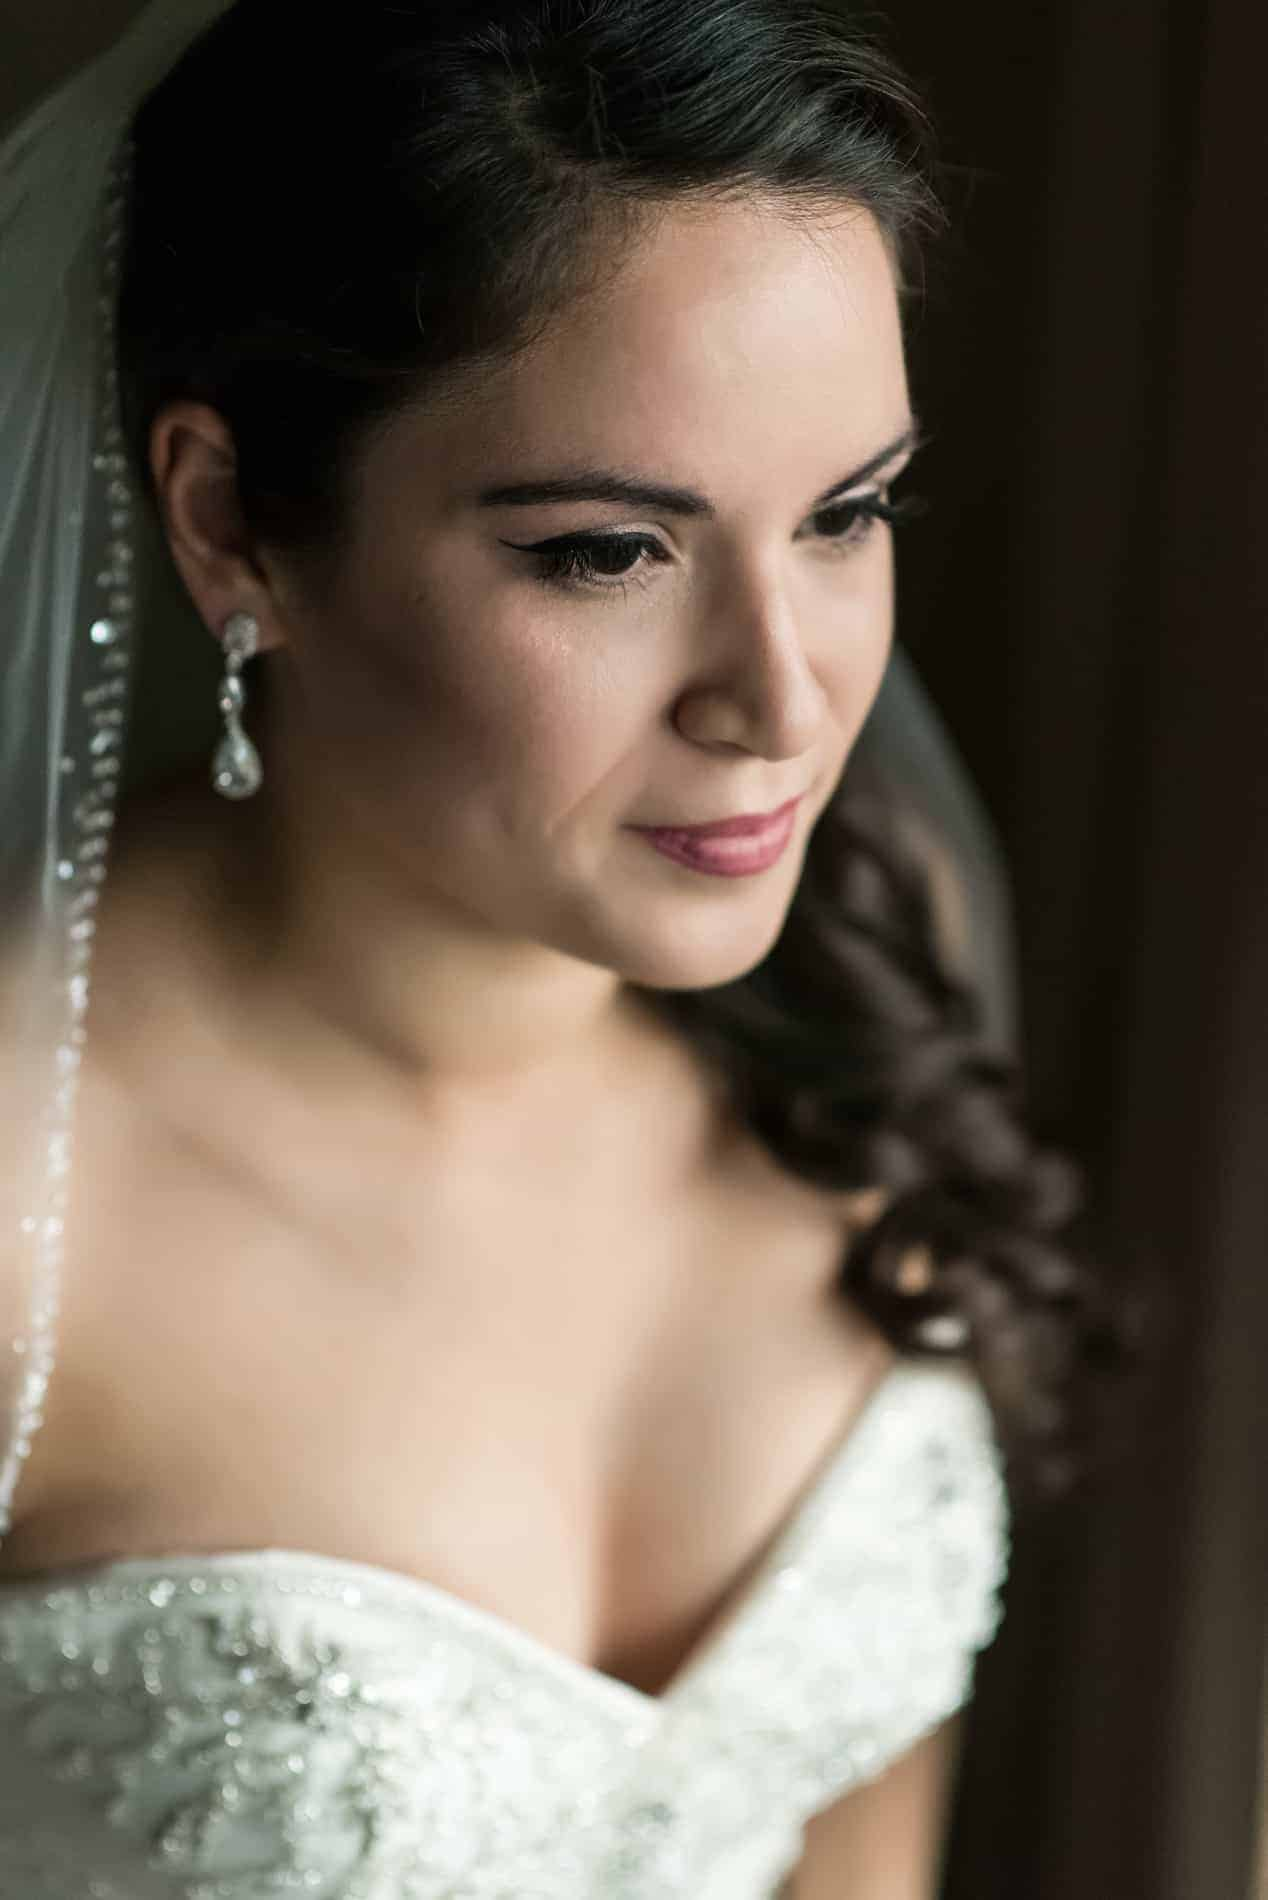 Beautiful Bride Portrait near a widow